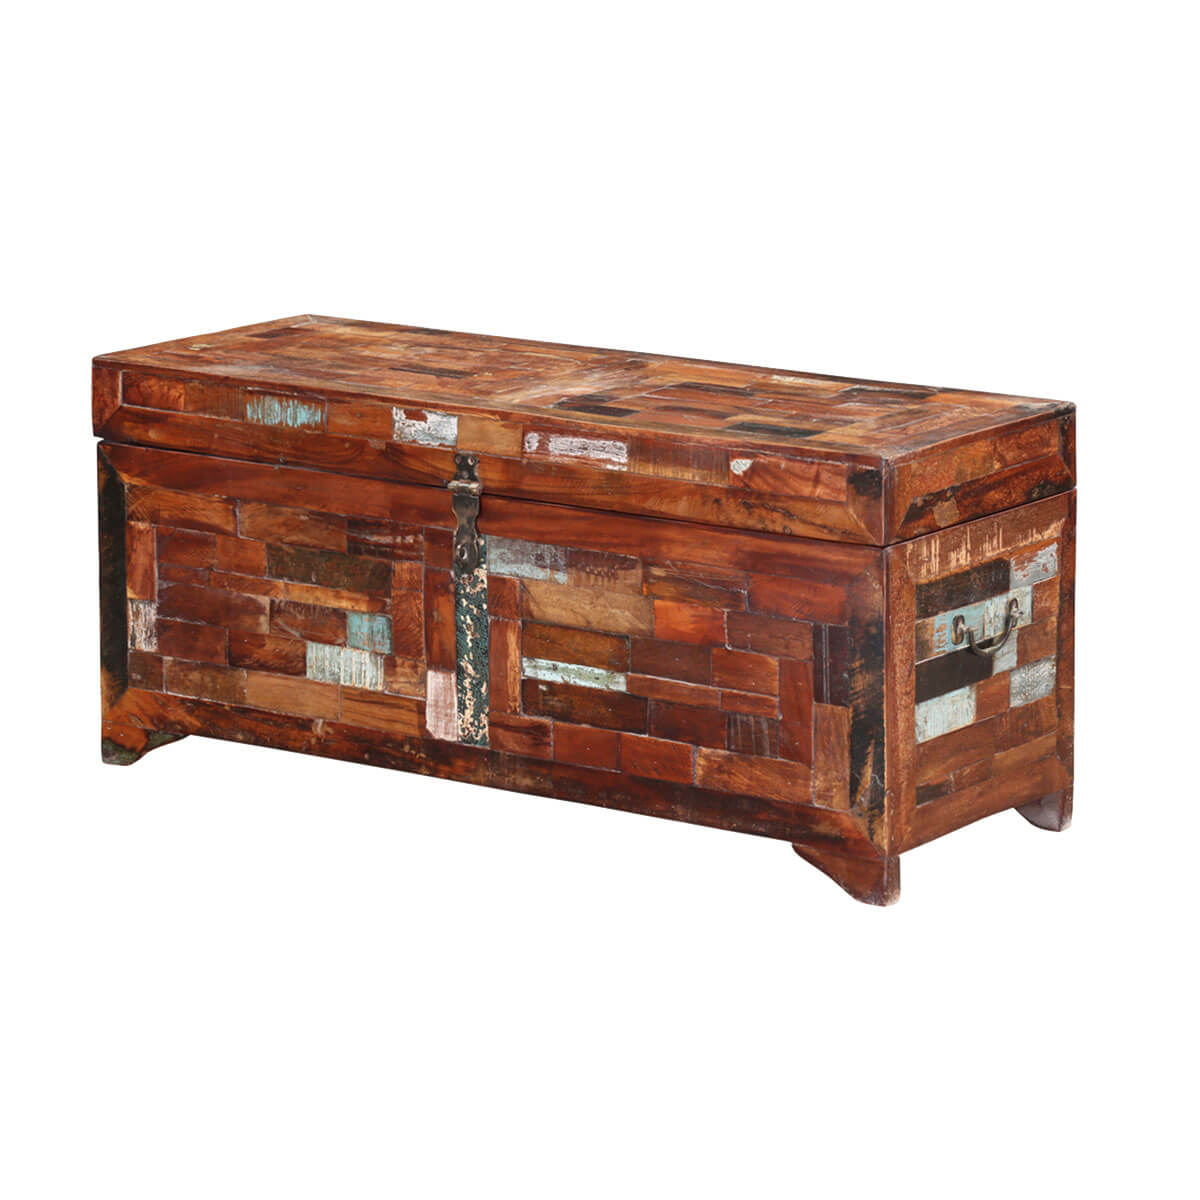 San Clarita Rustic Reclaimed Wood Storage Trunk Coffee Table